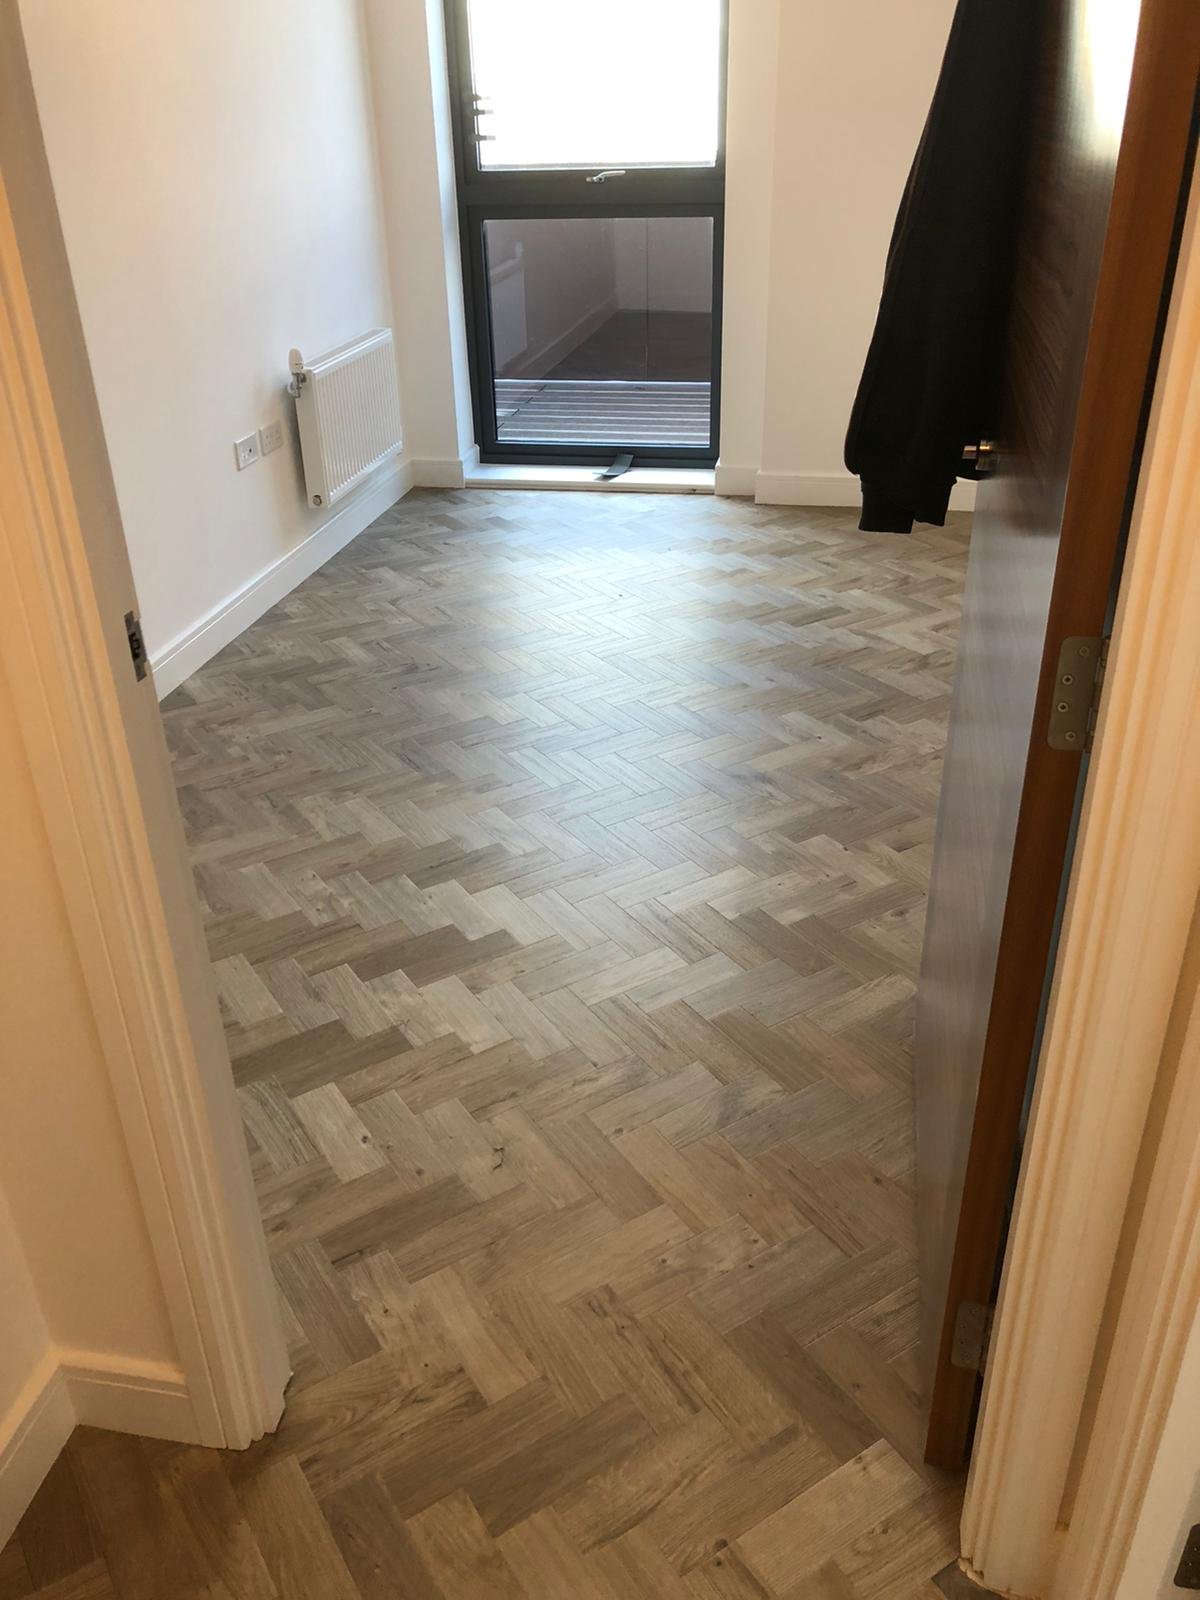 To supply & install Amtico Spacia Sun Bleached Oak luxury vinyl flooring in Kilburn 2